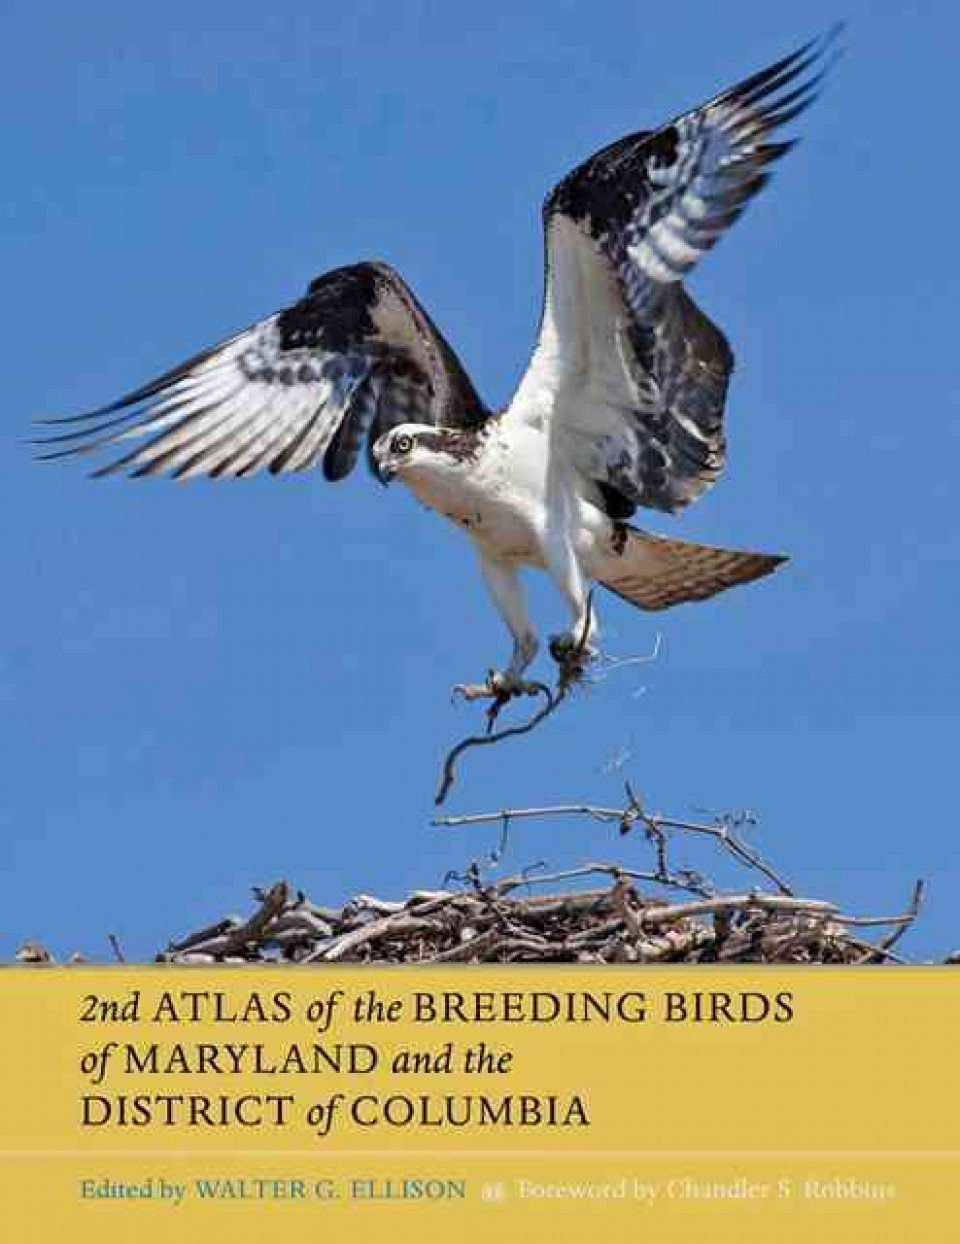 Second Atlas of the Breeding Birds of Maryland and the District of Columbia